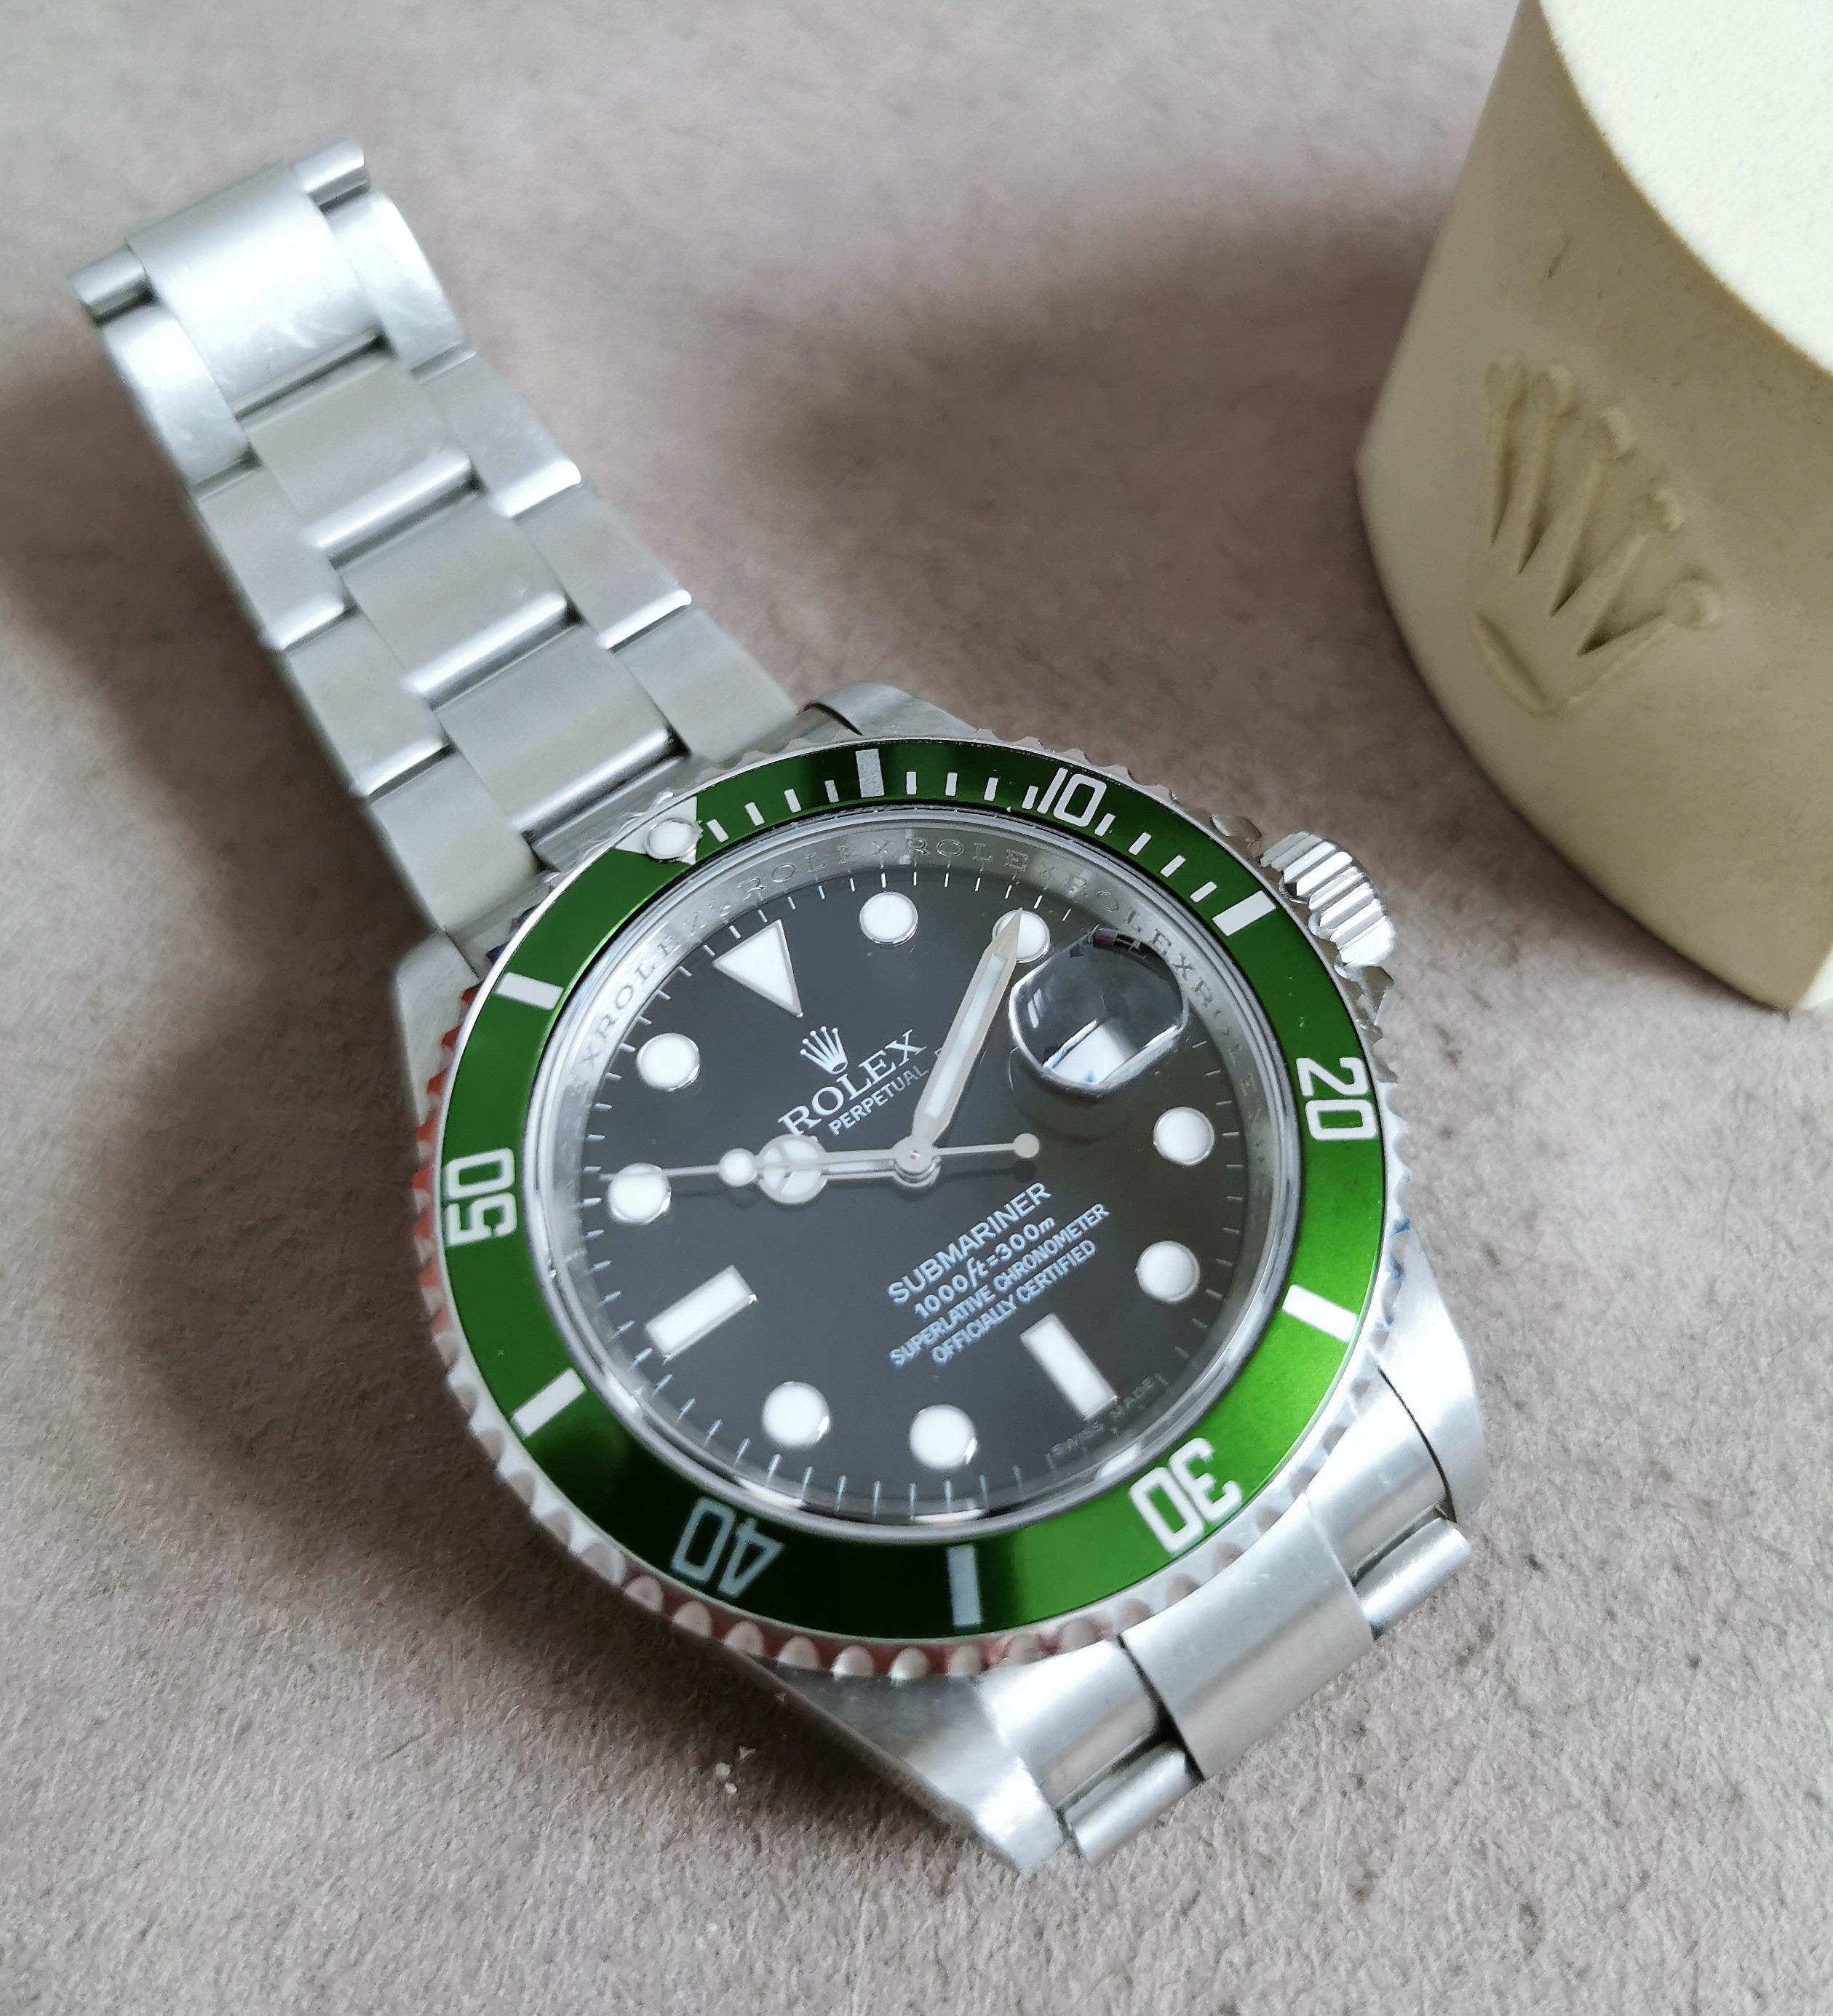 Rolex Submariner Date Submariner Green Bezel Kermit 16610LV RRR Serial V year 2010 good condition | San Giorgio a Cremano